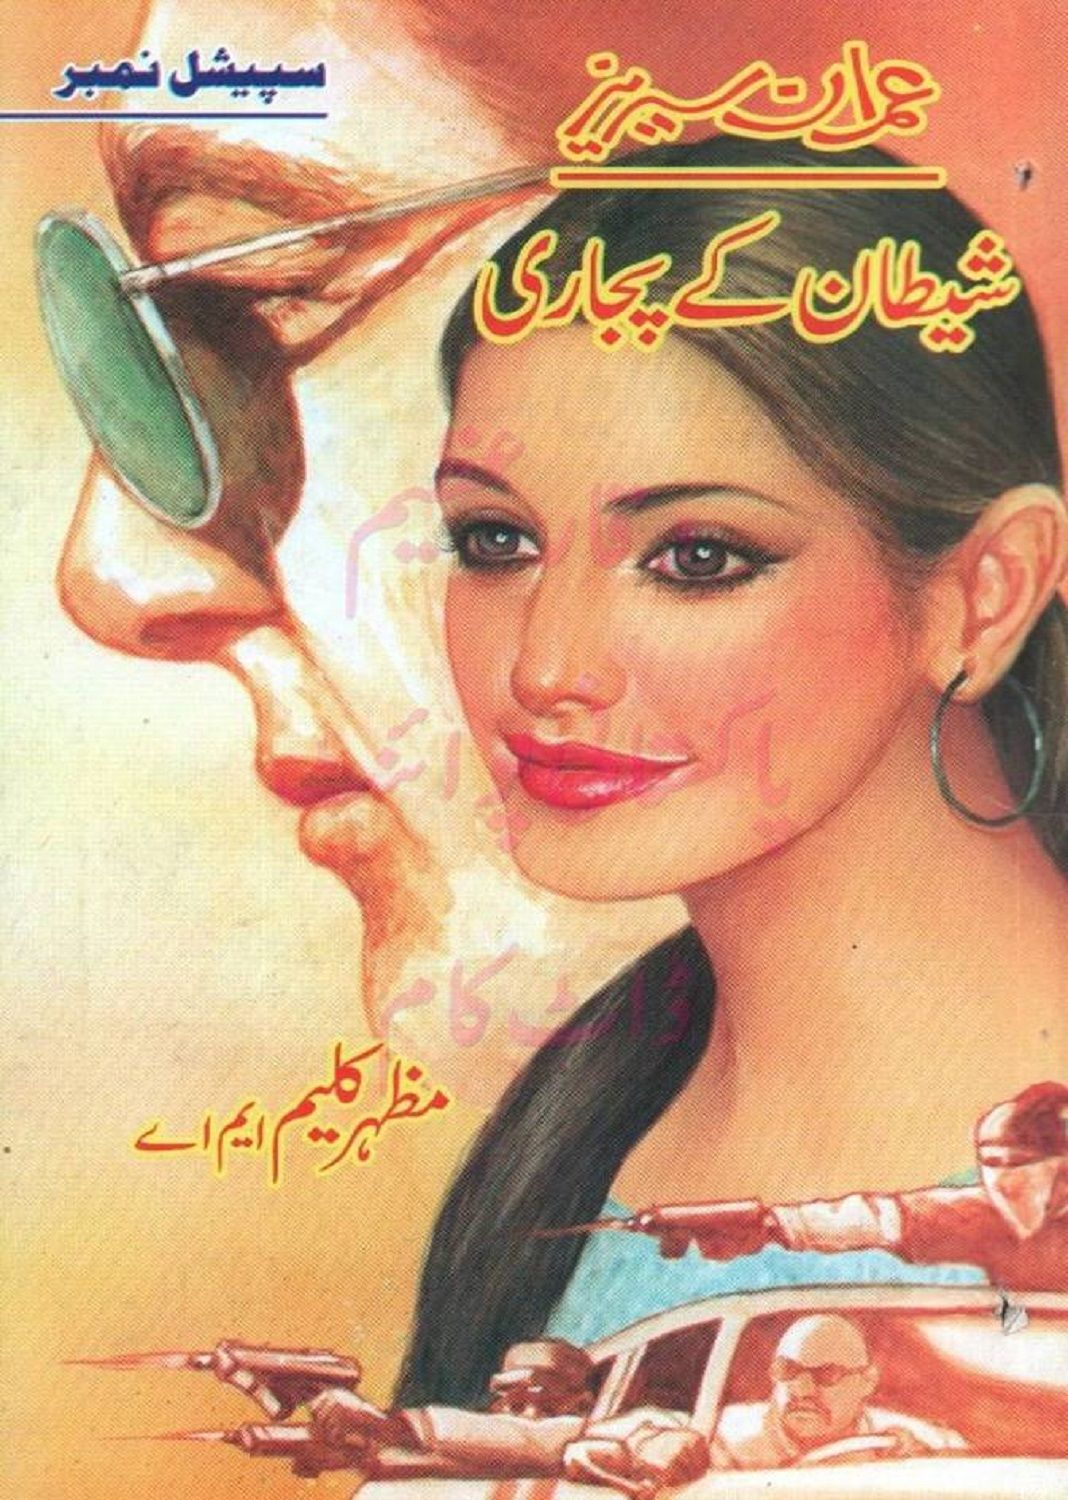 Shaitan Ke Pujari Imran Series Novel by Mazhar Kaleem MA, read online free  download all Imran Series Novels at aiourdubooks.net